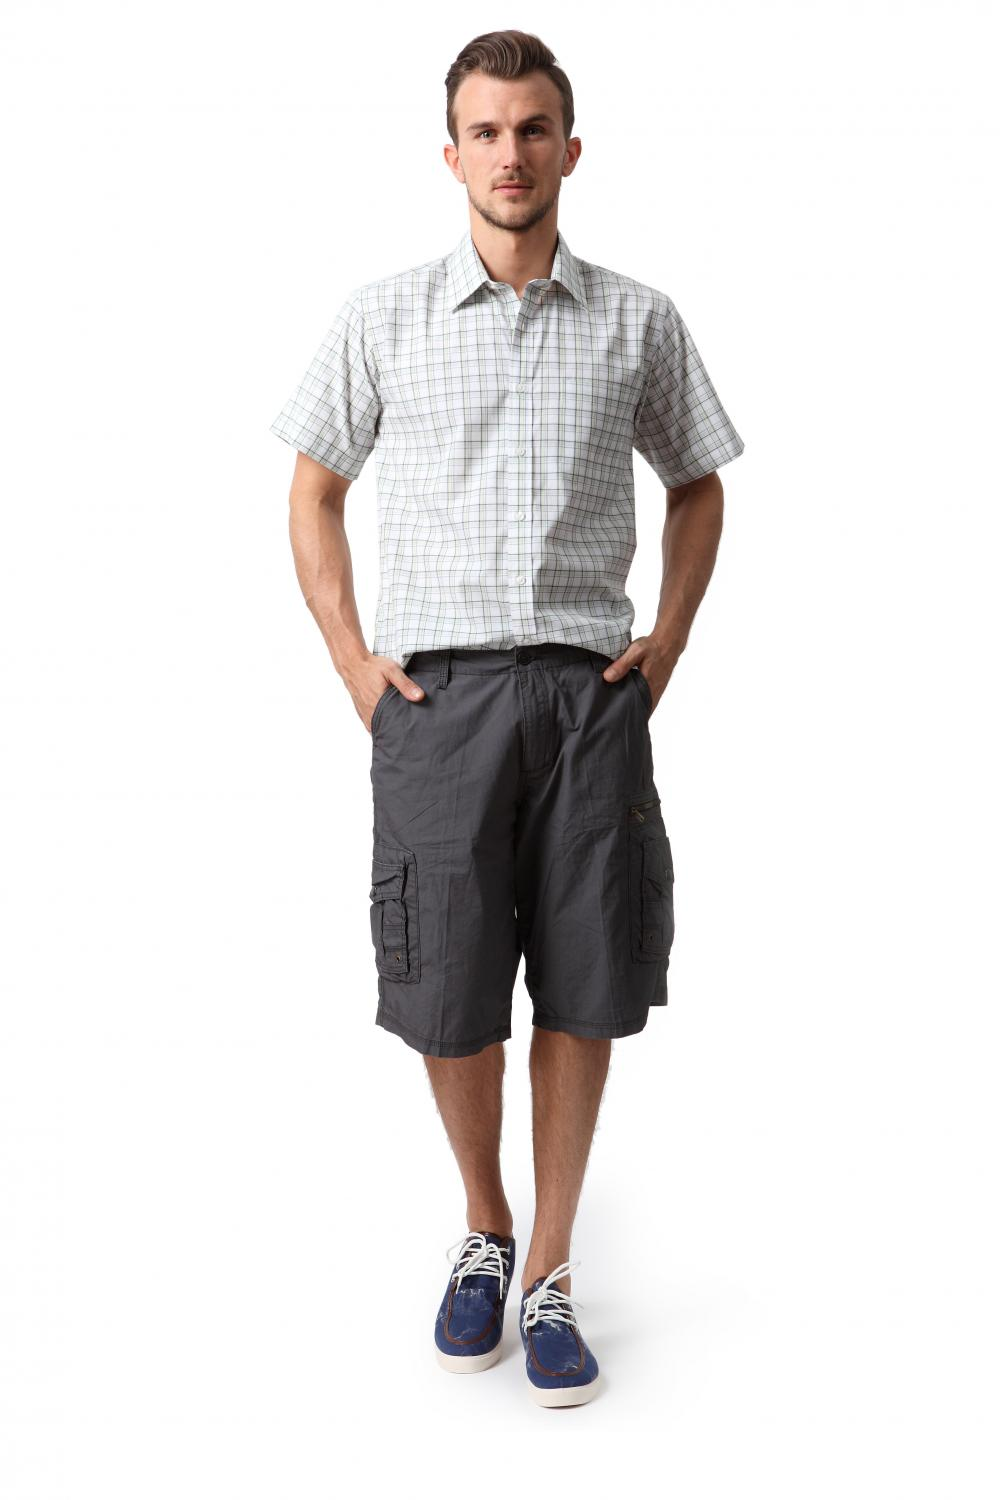 Men's pockets Shorts